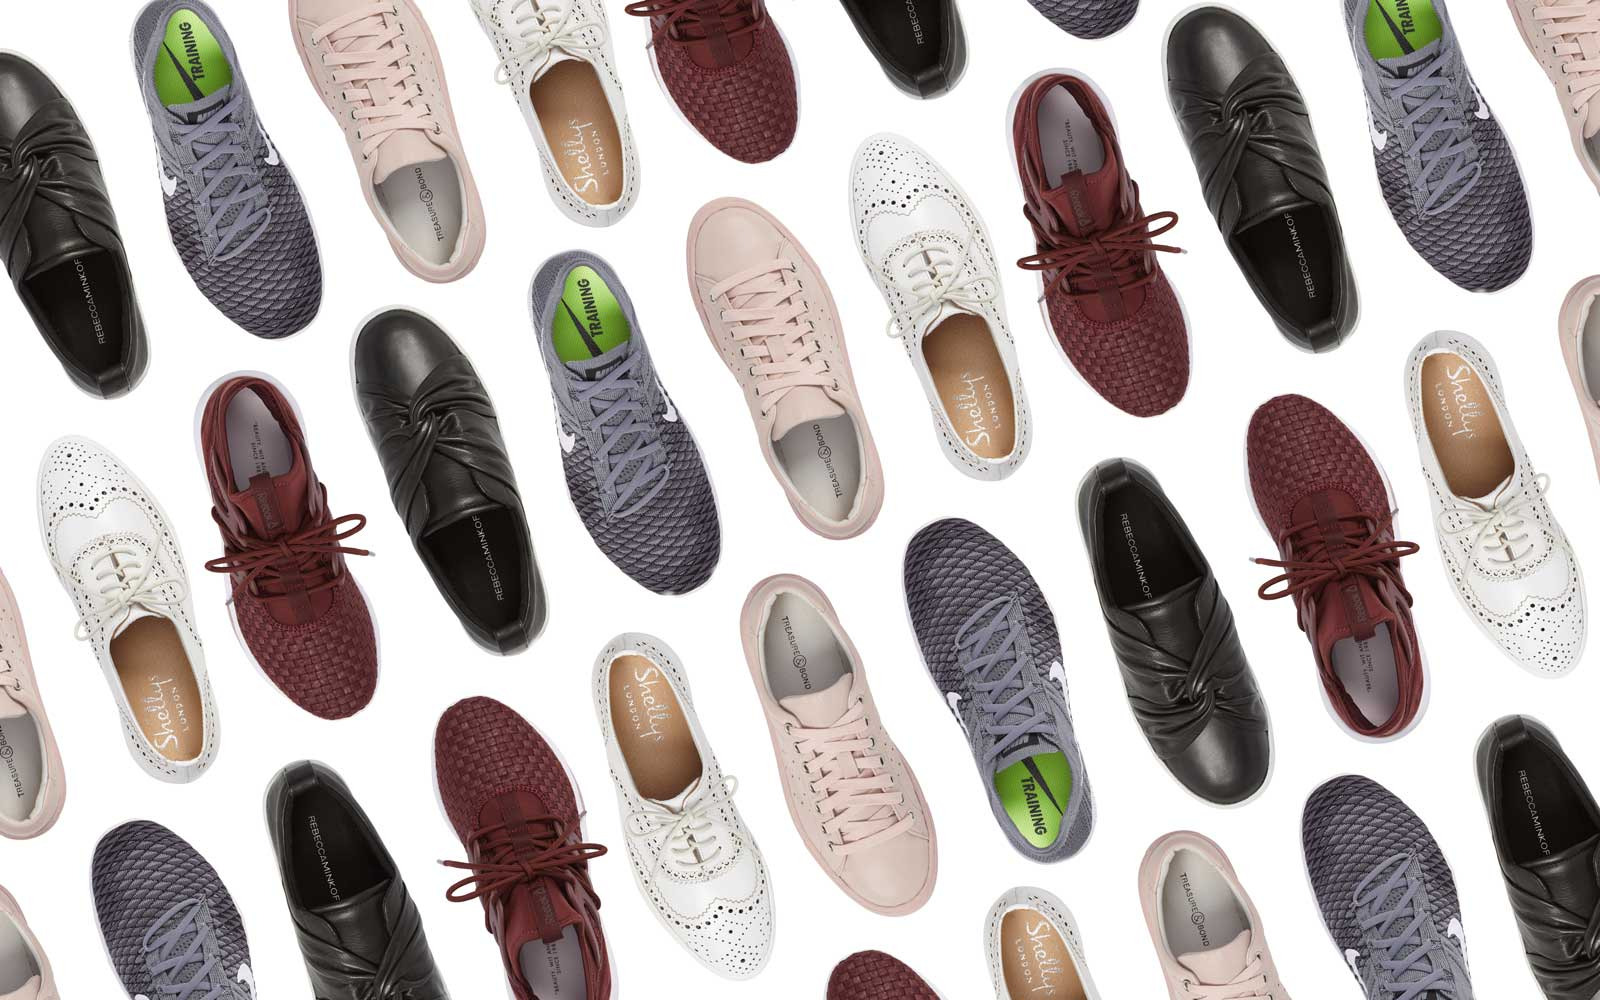 Nordstrom's Half-yearly Sale Has So Many Comfy Sneakers for up to 50% Off